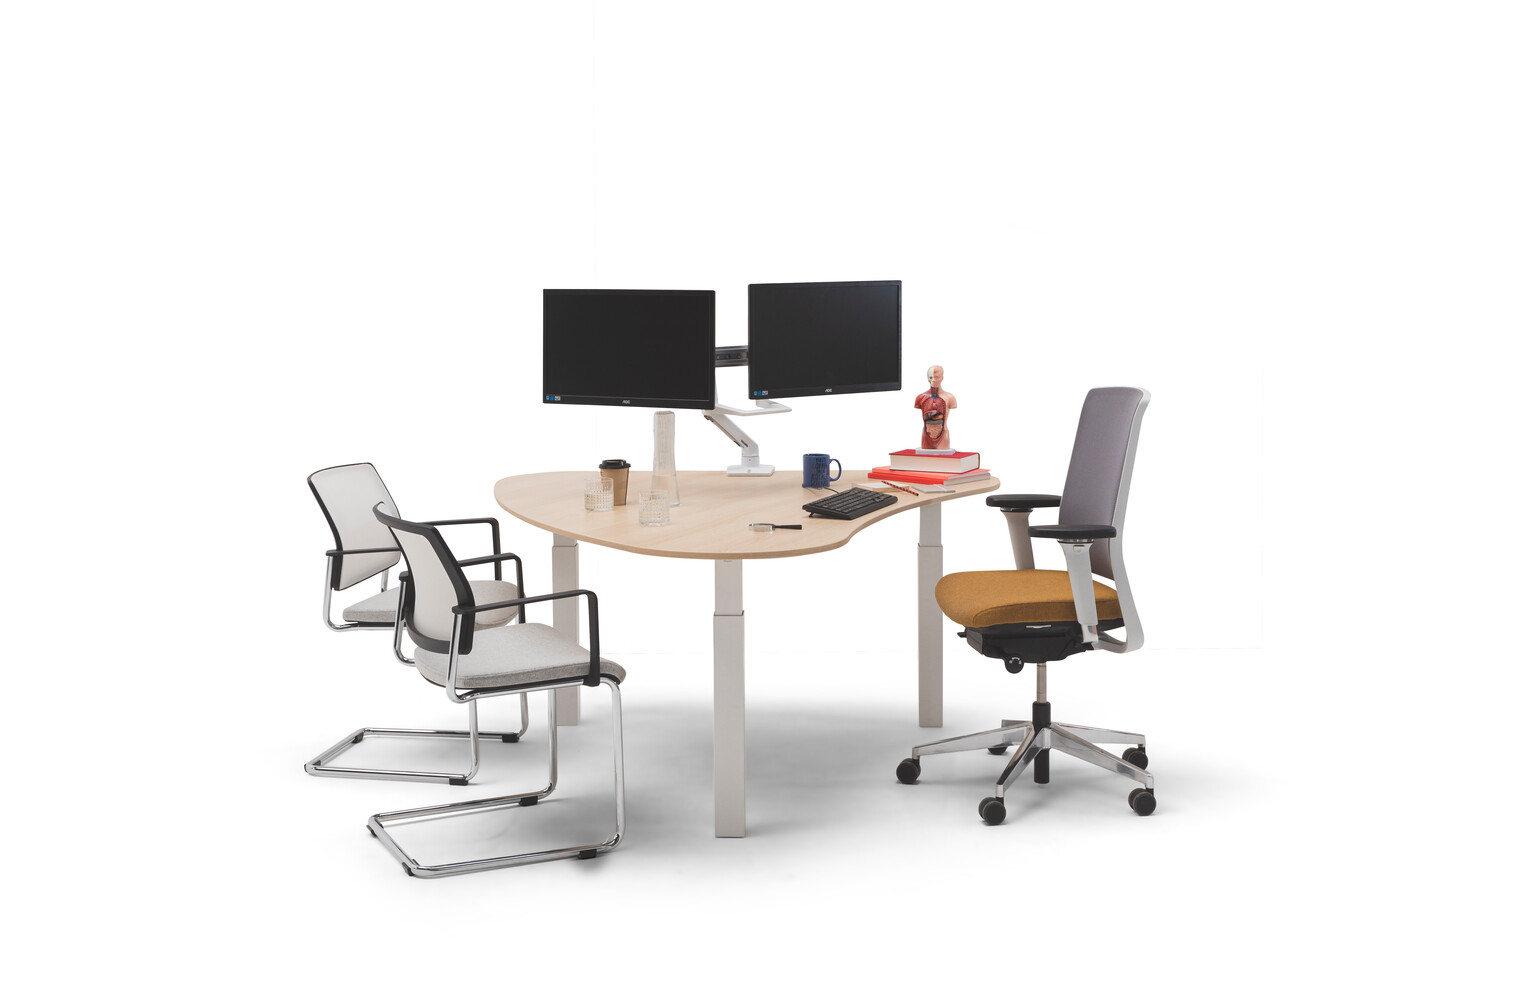 Gispen TMNL doc workstation sit sit in white with oak top and Zinn office and conference chairs front view